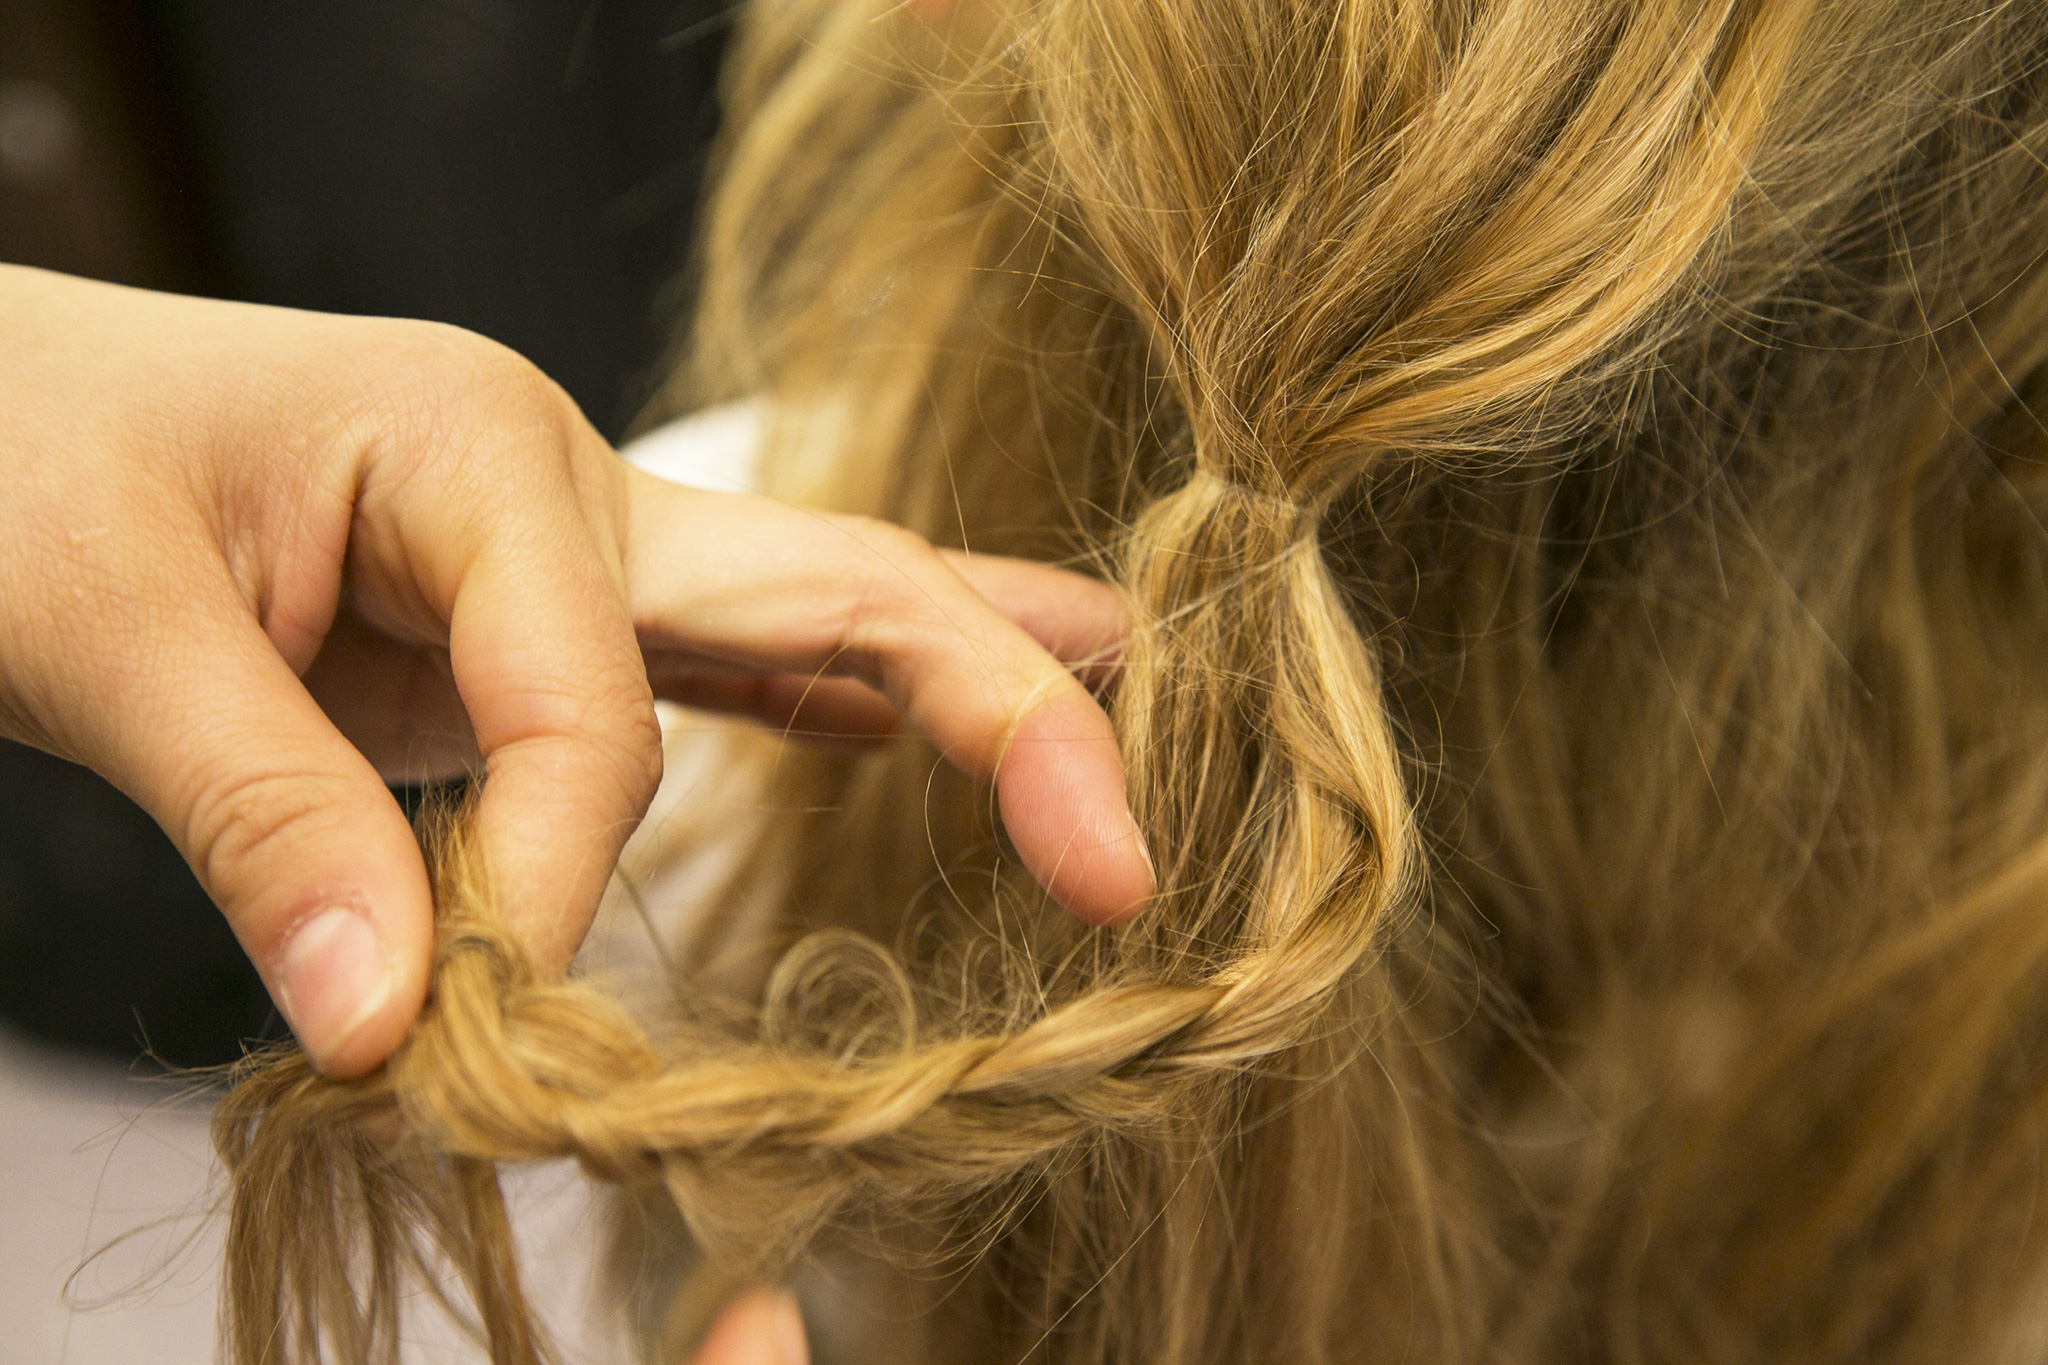 To hide the elastic, take a small section of hair from the ponytail and create a loose braid.